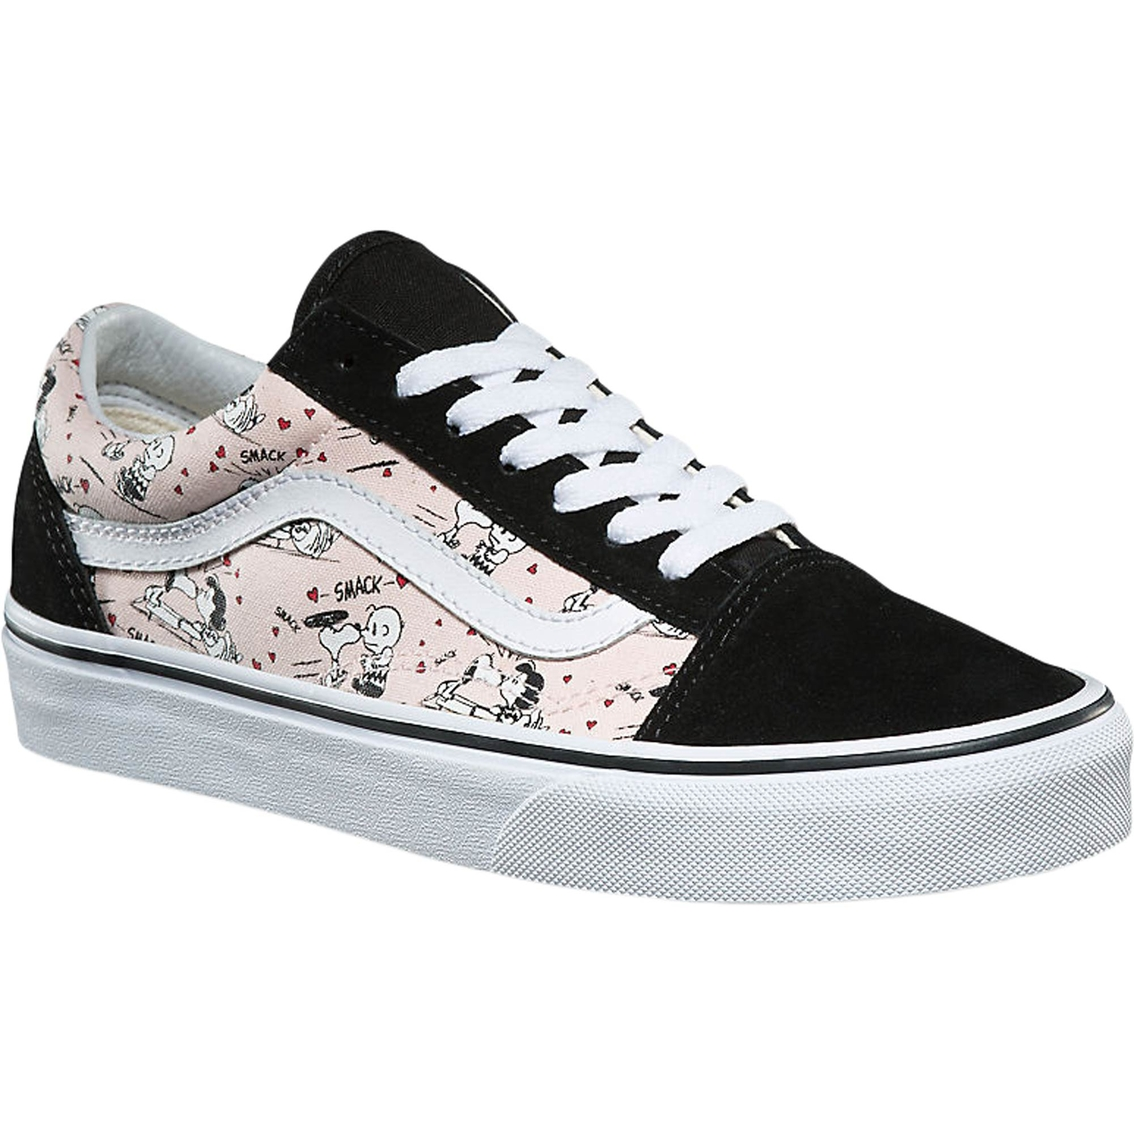 Canvas Sneakers Shoes Price